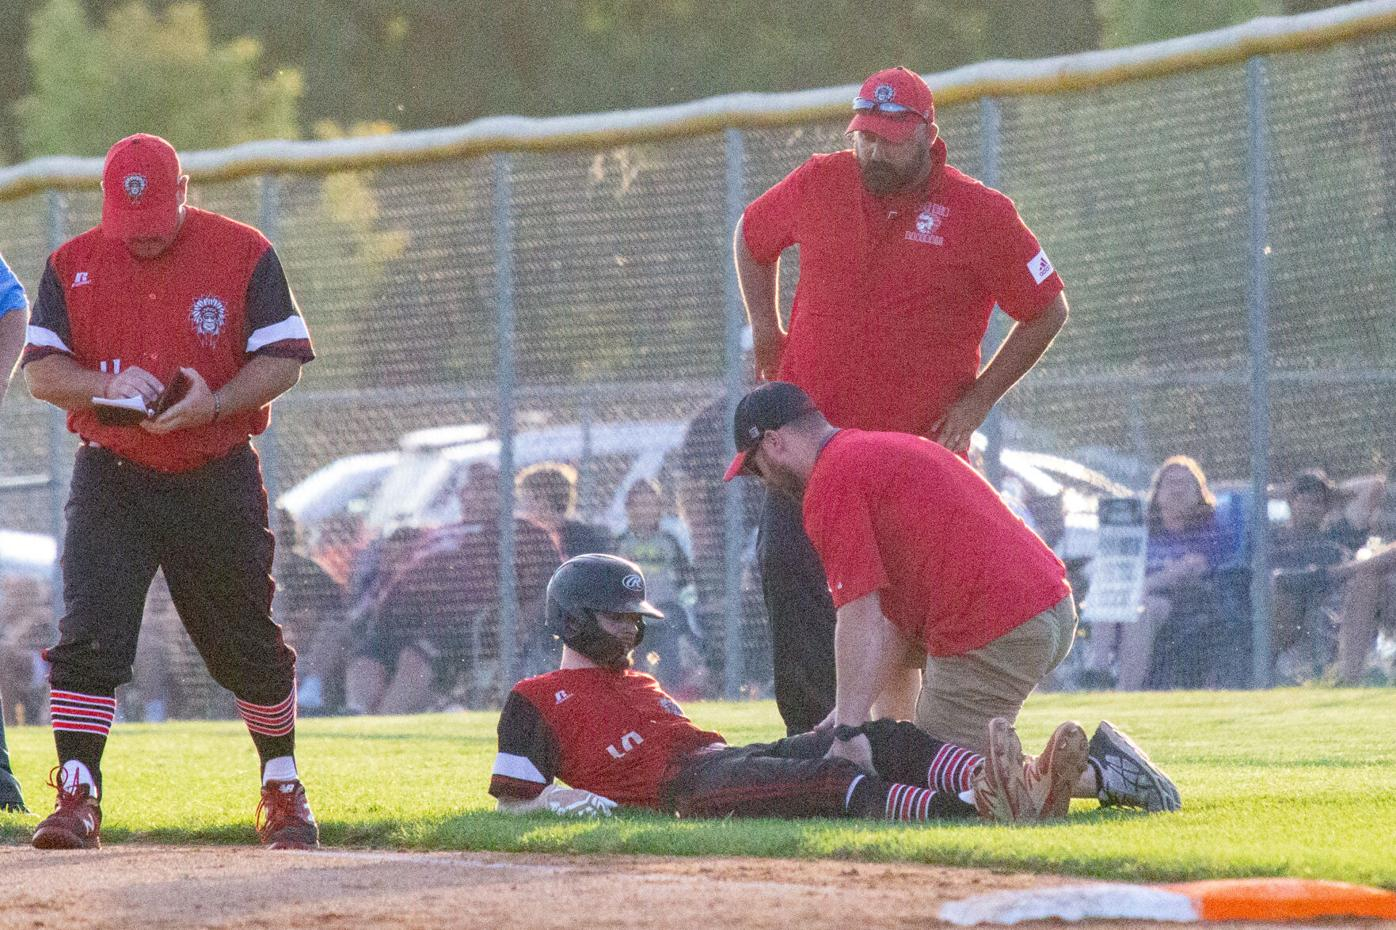 Big Reds denied fourth straight trip to state (Main 2-4 column photo)